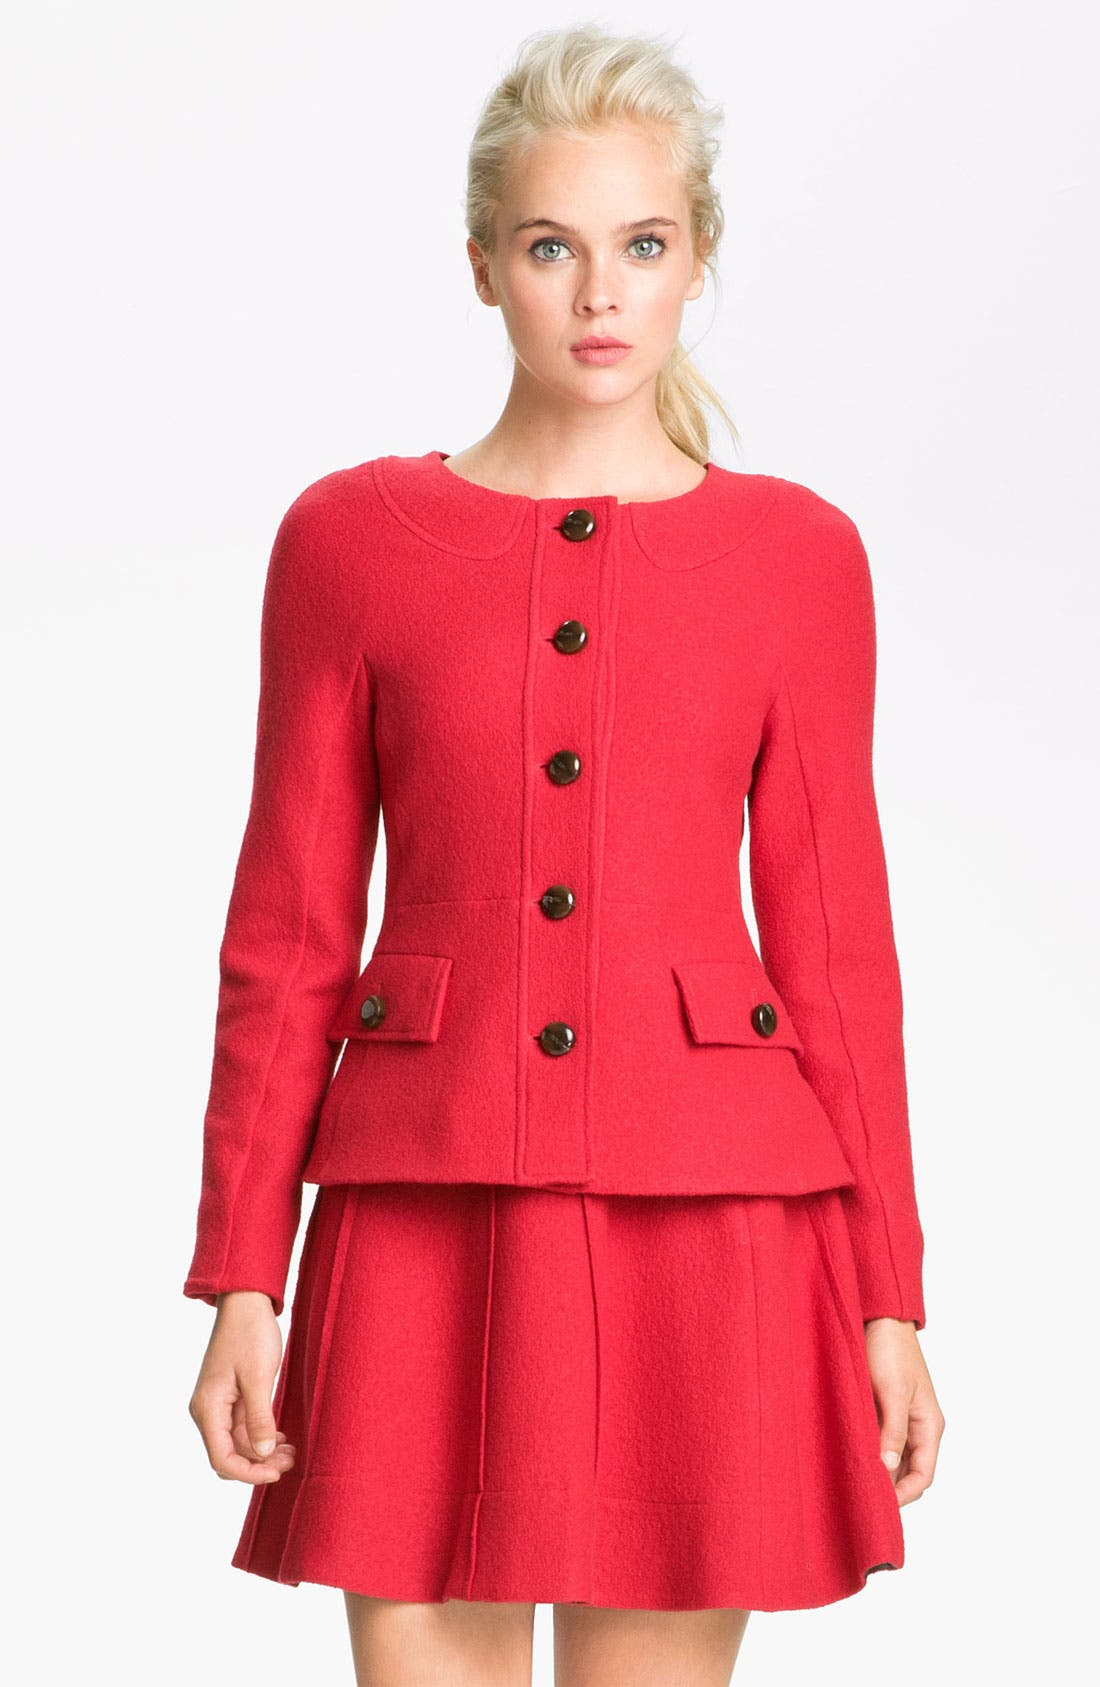 Alternate Image 1 Selected - MARC BY MARC JACOBS 'Blythe' Wool Jacket